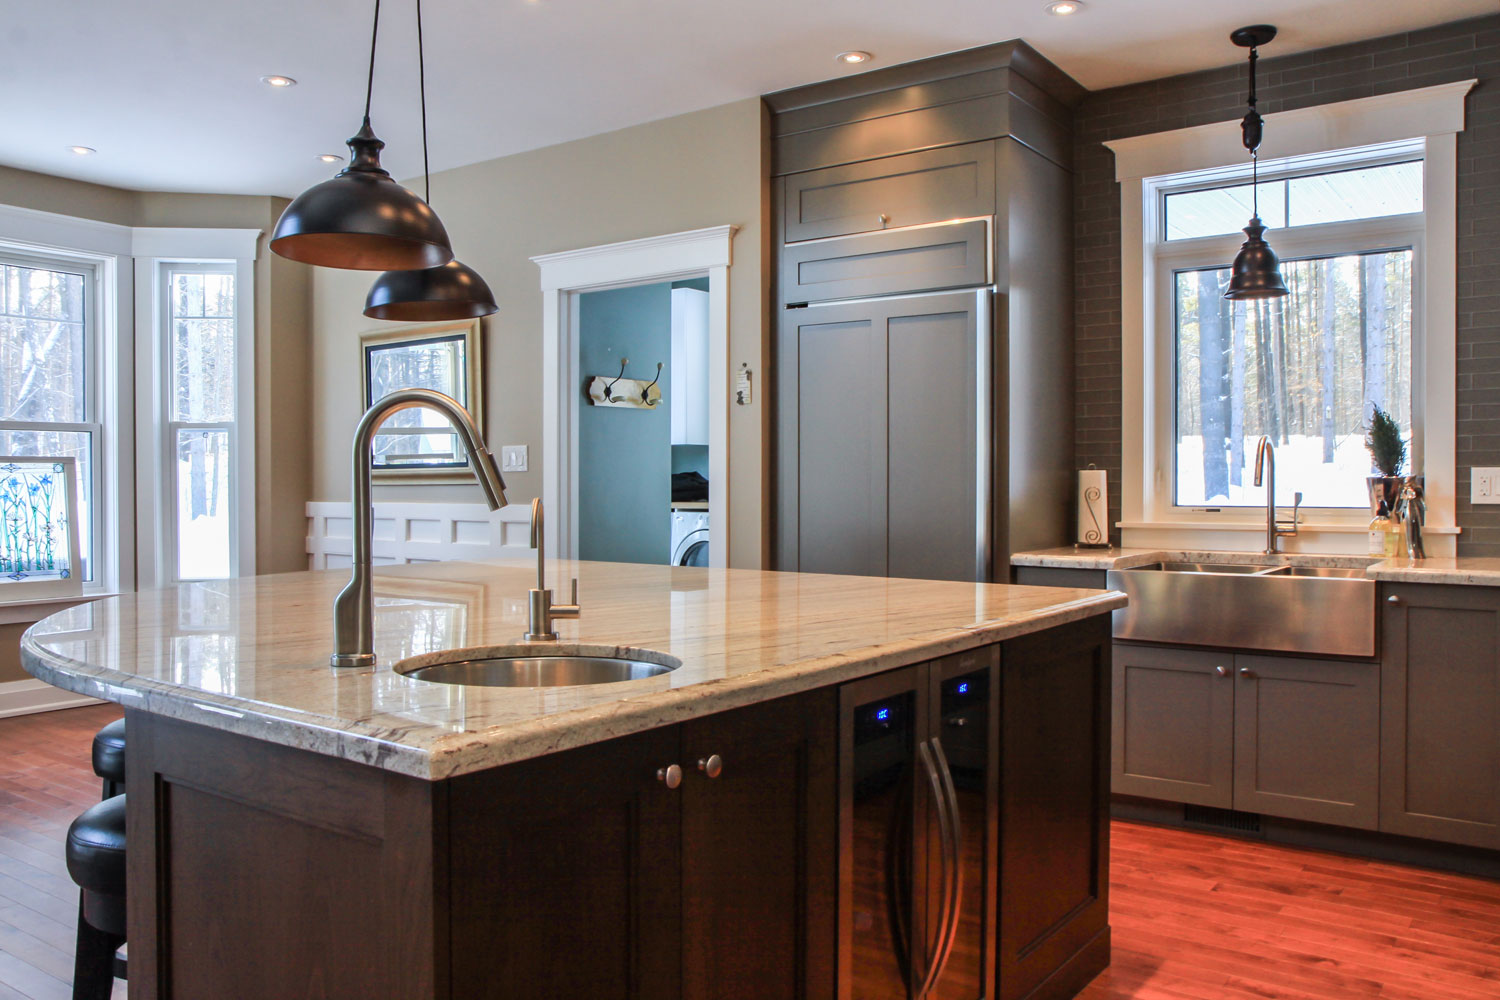 kitchen design with hidden fridge and bar sink in the island - Total Living Concepts barrie ontario